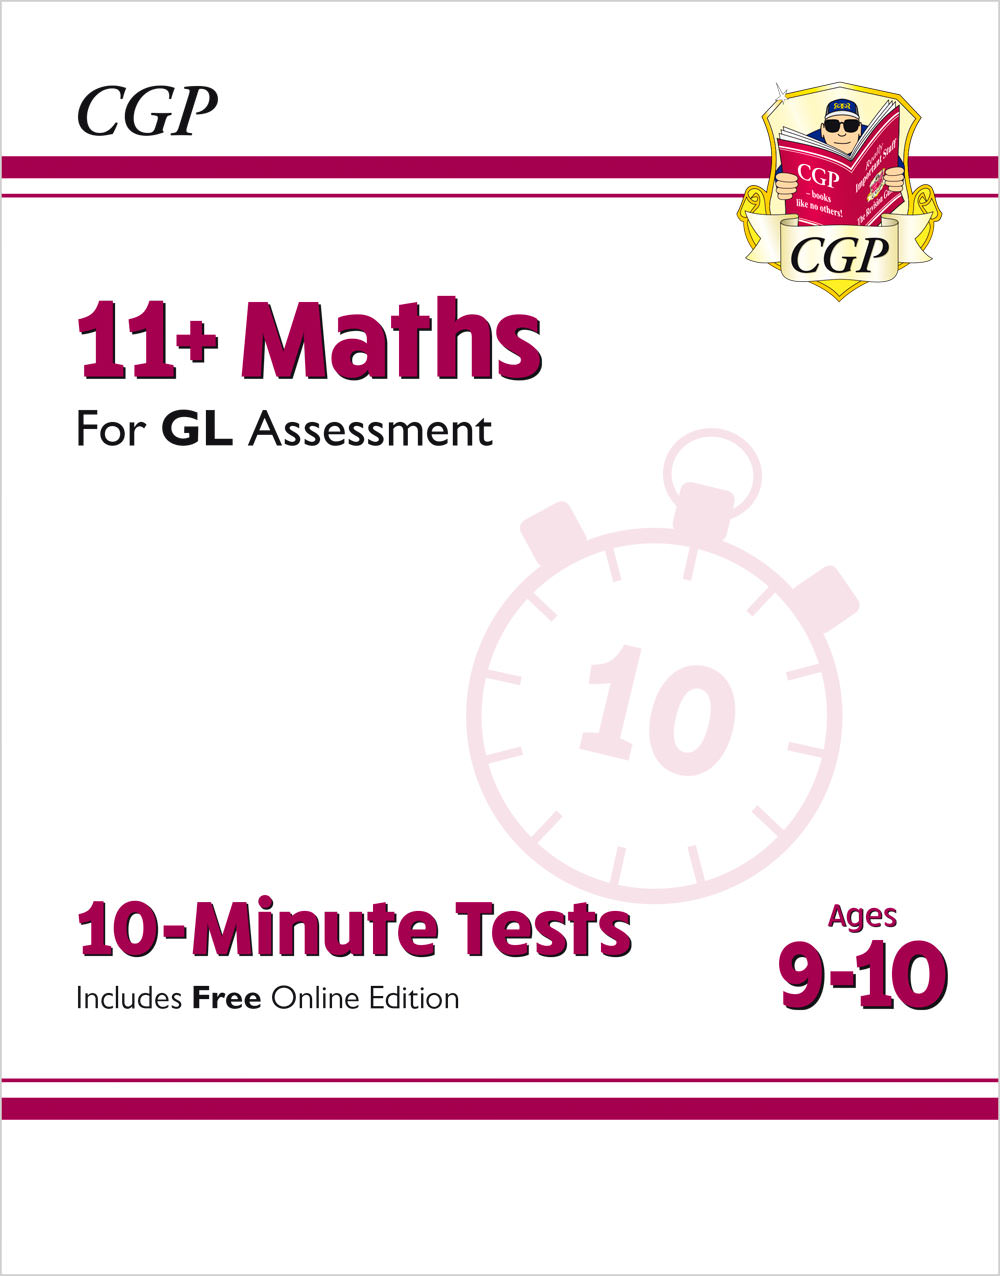 M5XPE1 - tbc - 10-Minute Tests for 11+ Maths Ages 9-10 - GL